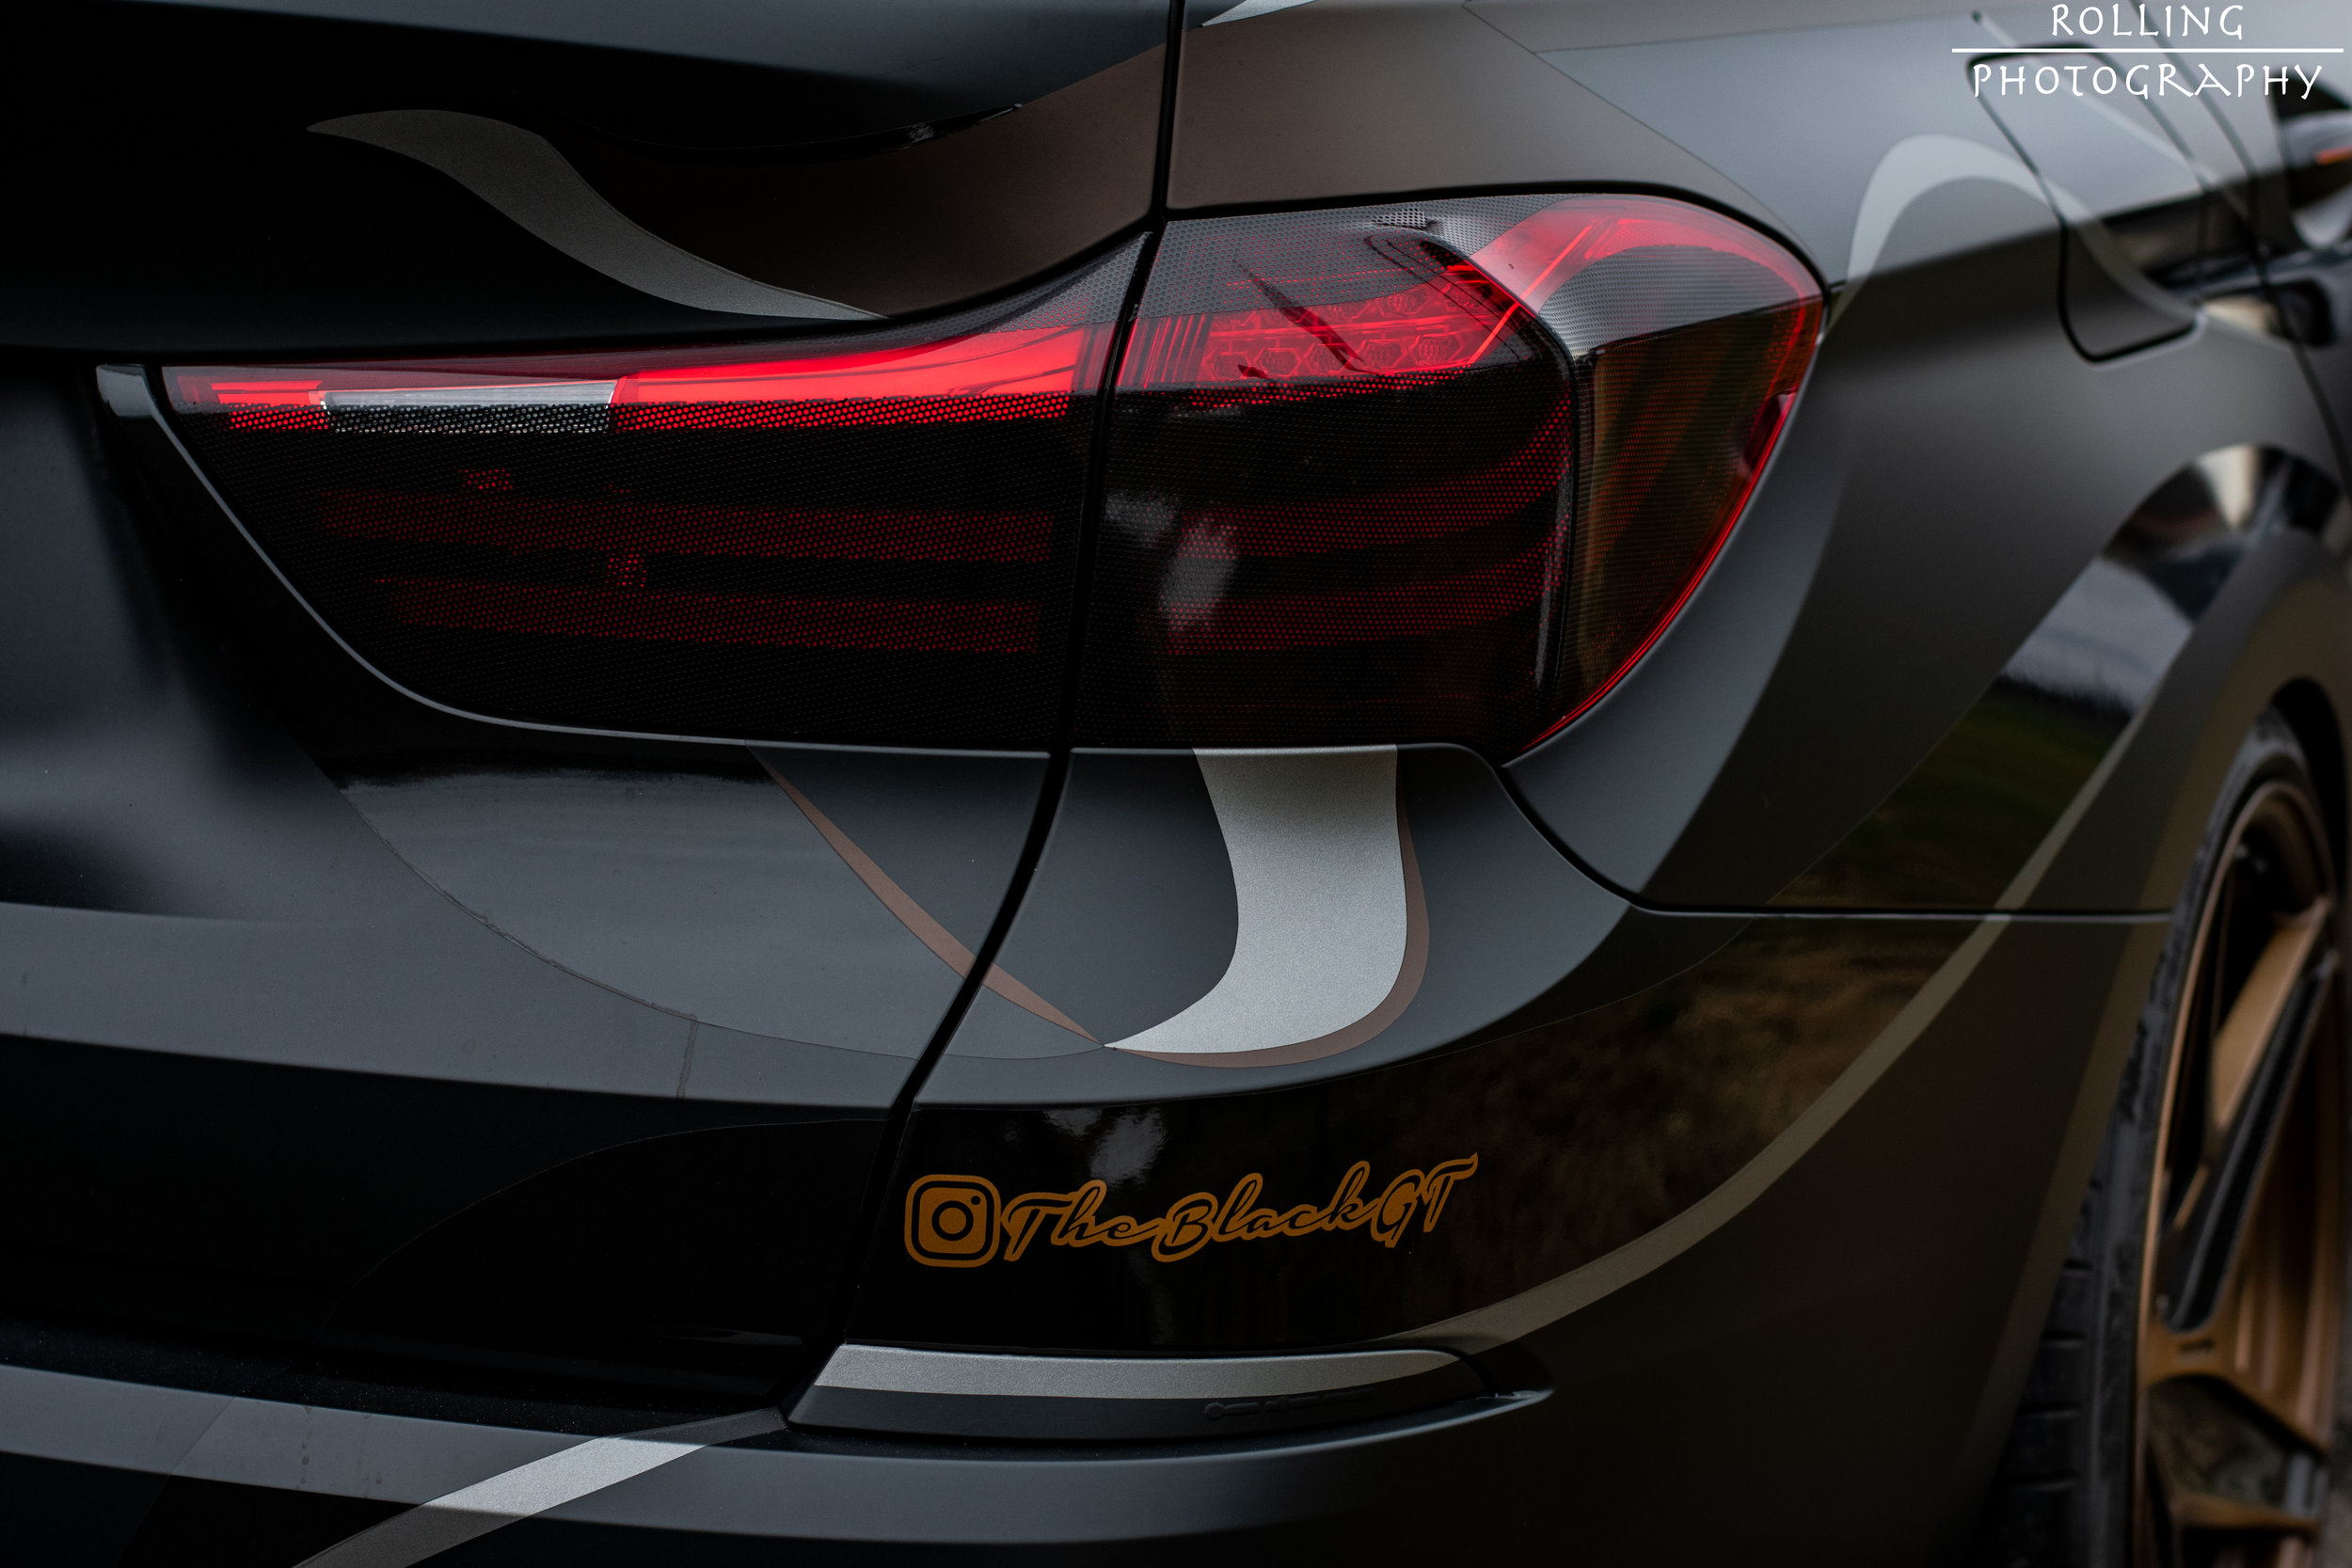 TheBlackGT High Angle Tail Light.jpg